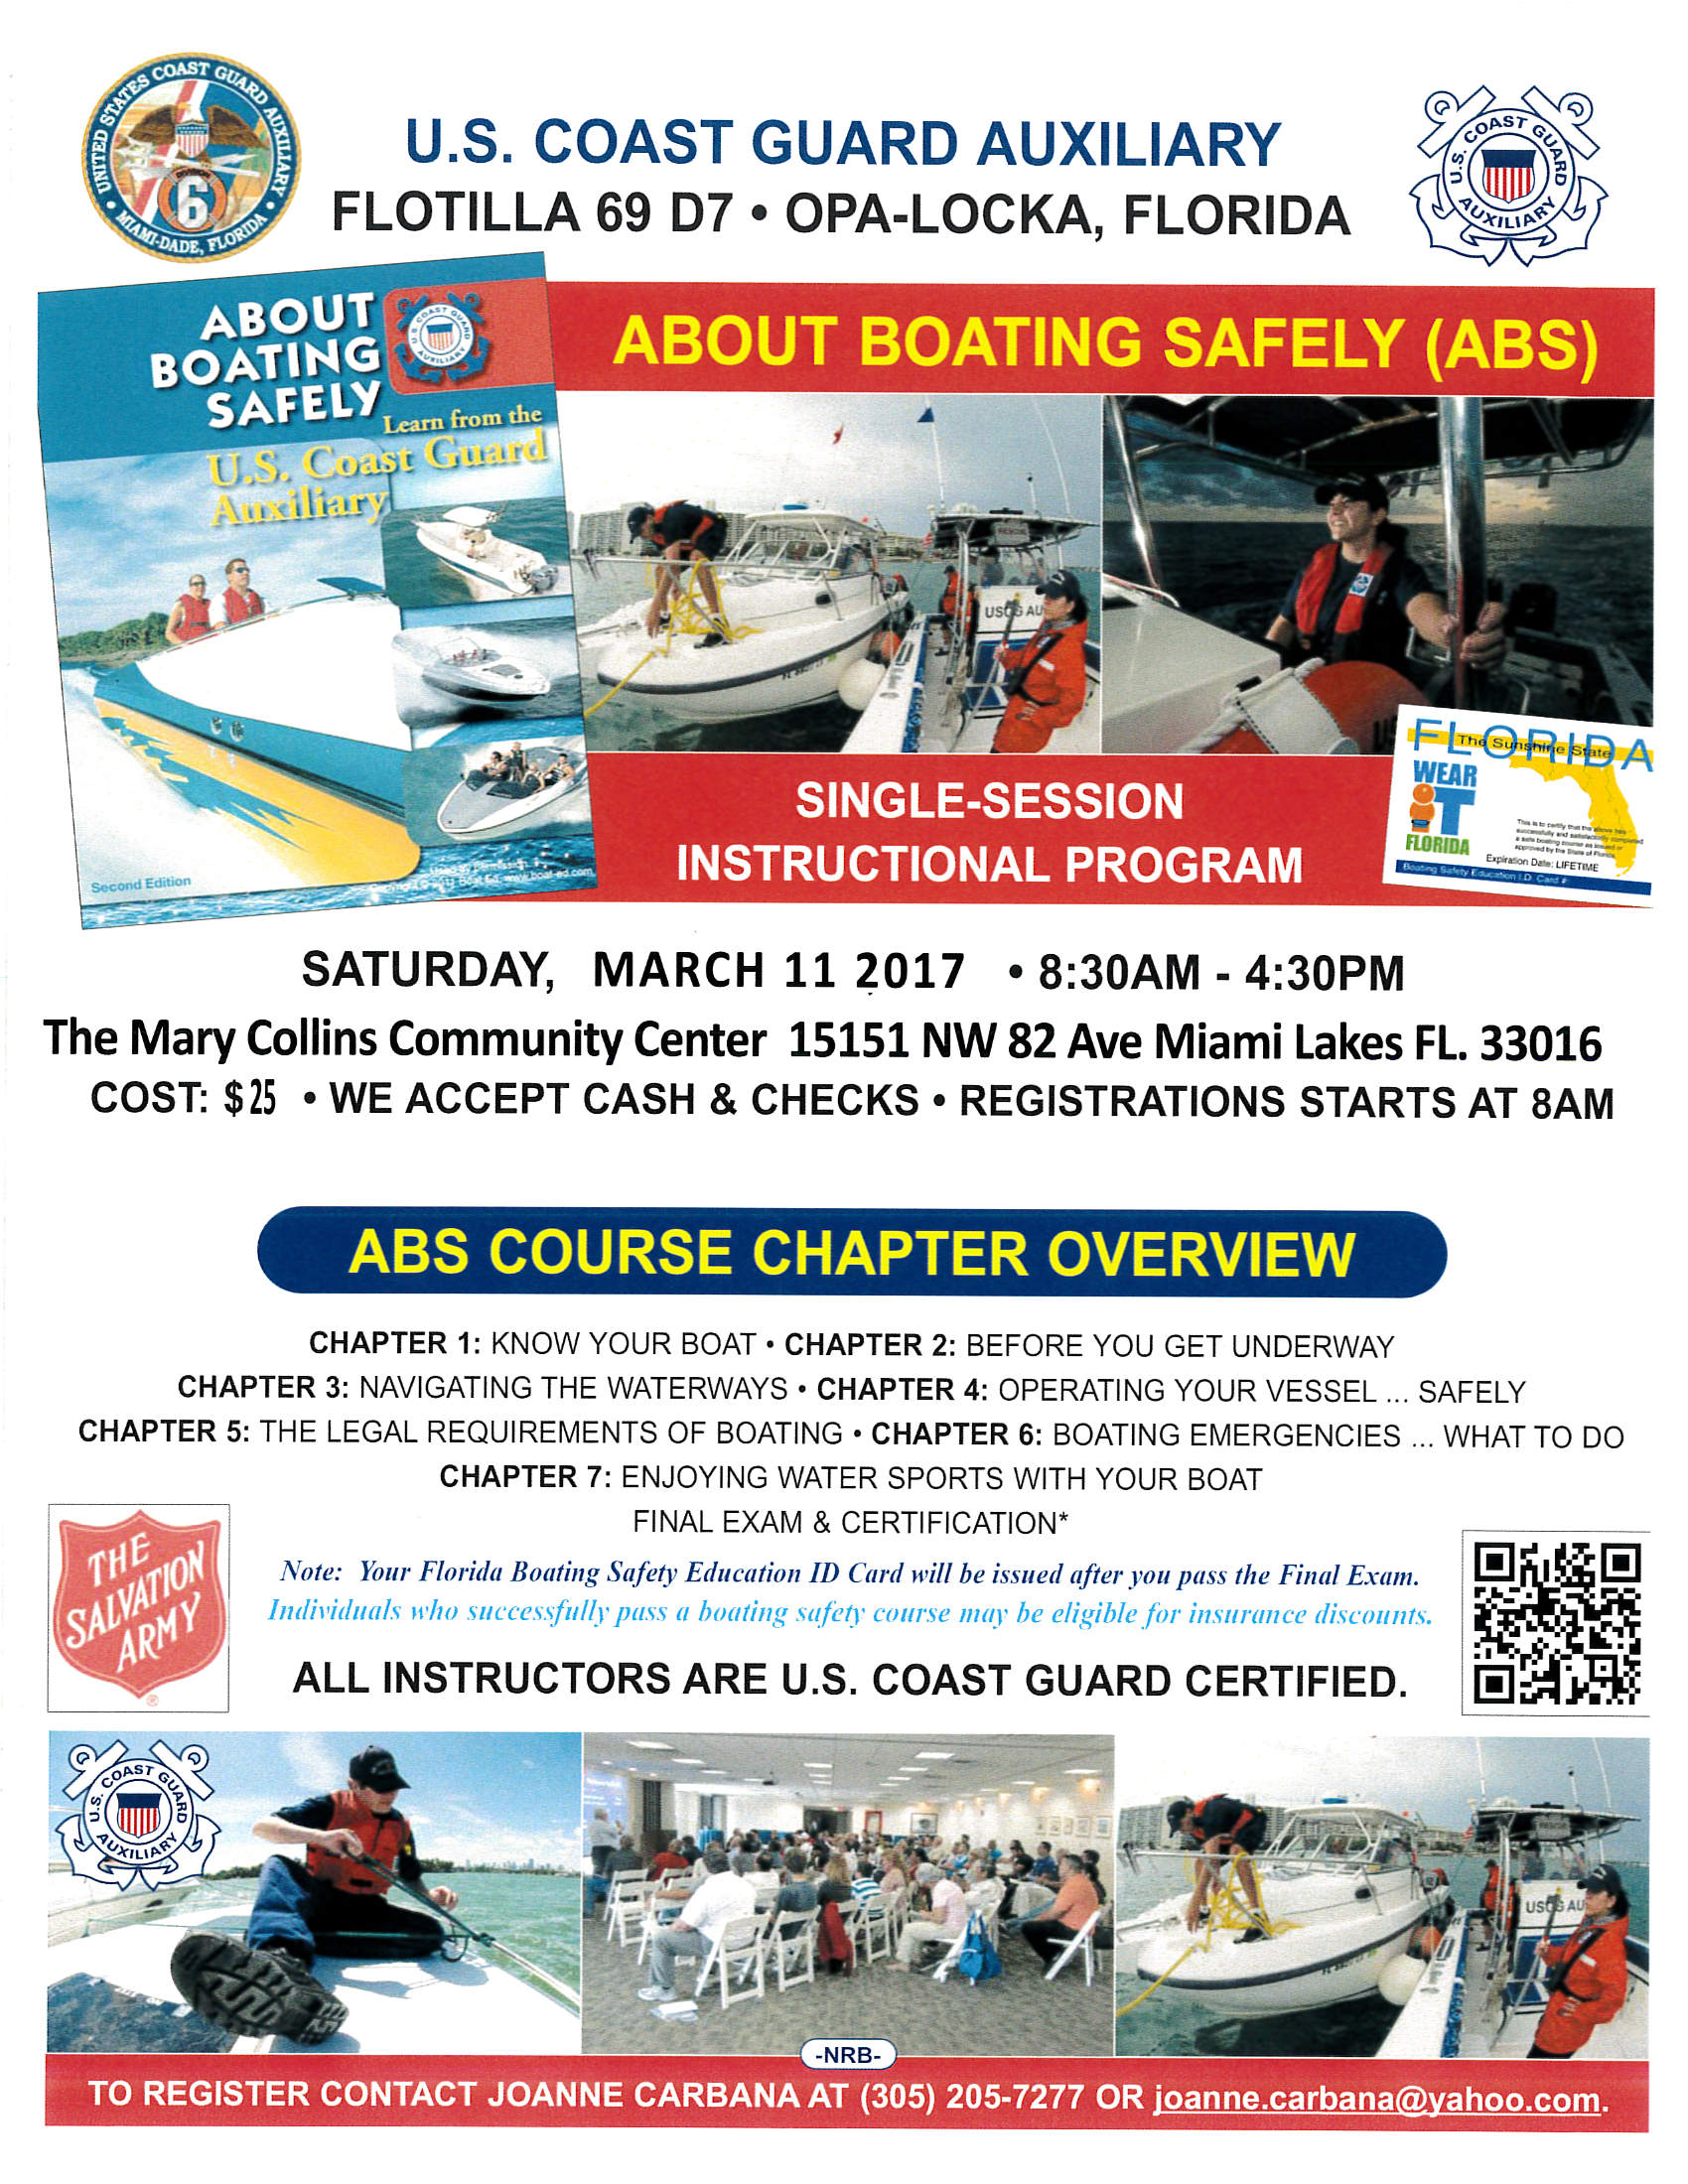 ABS FLYER MIAMI LAKES MARCH 2017 REVISED